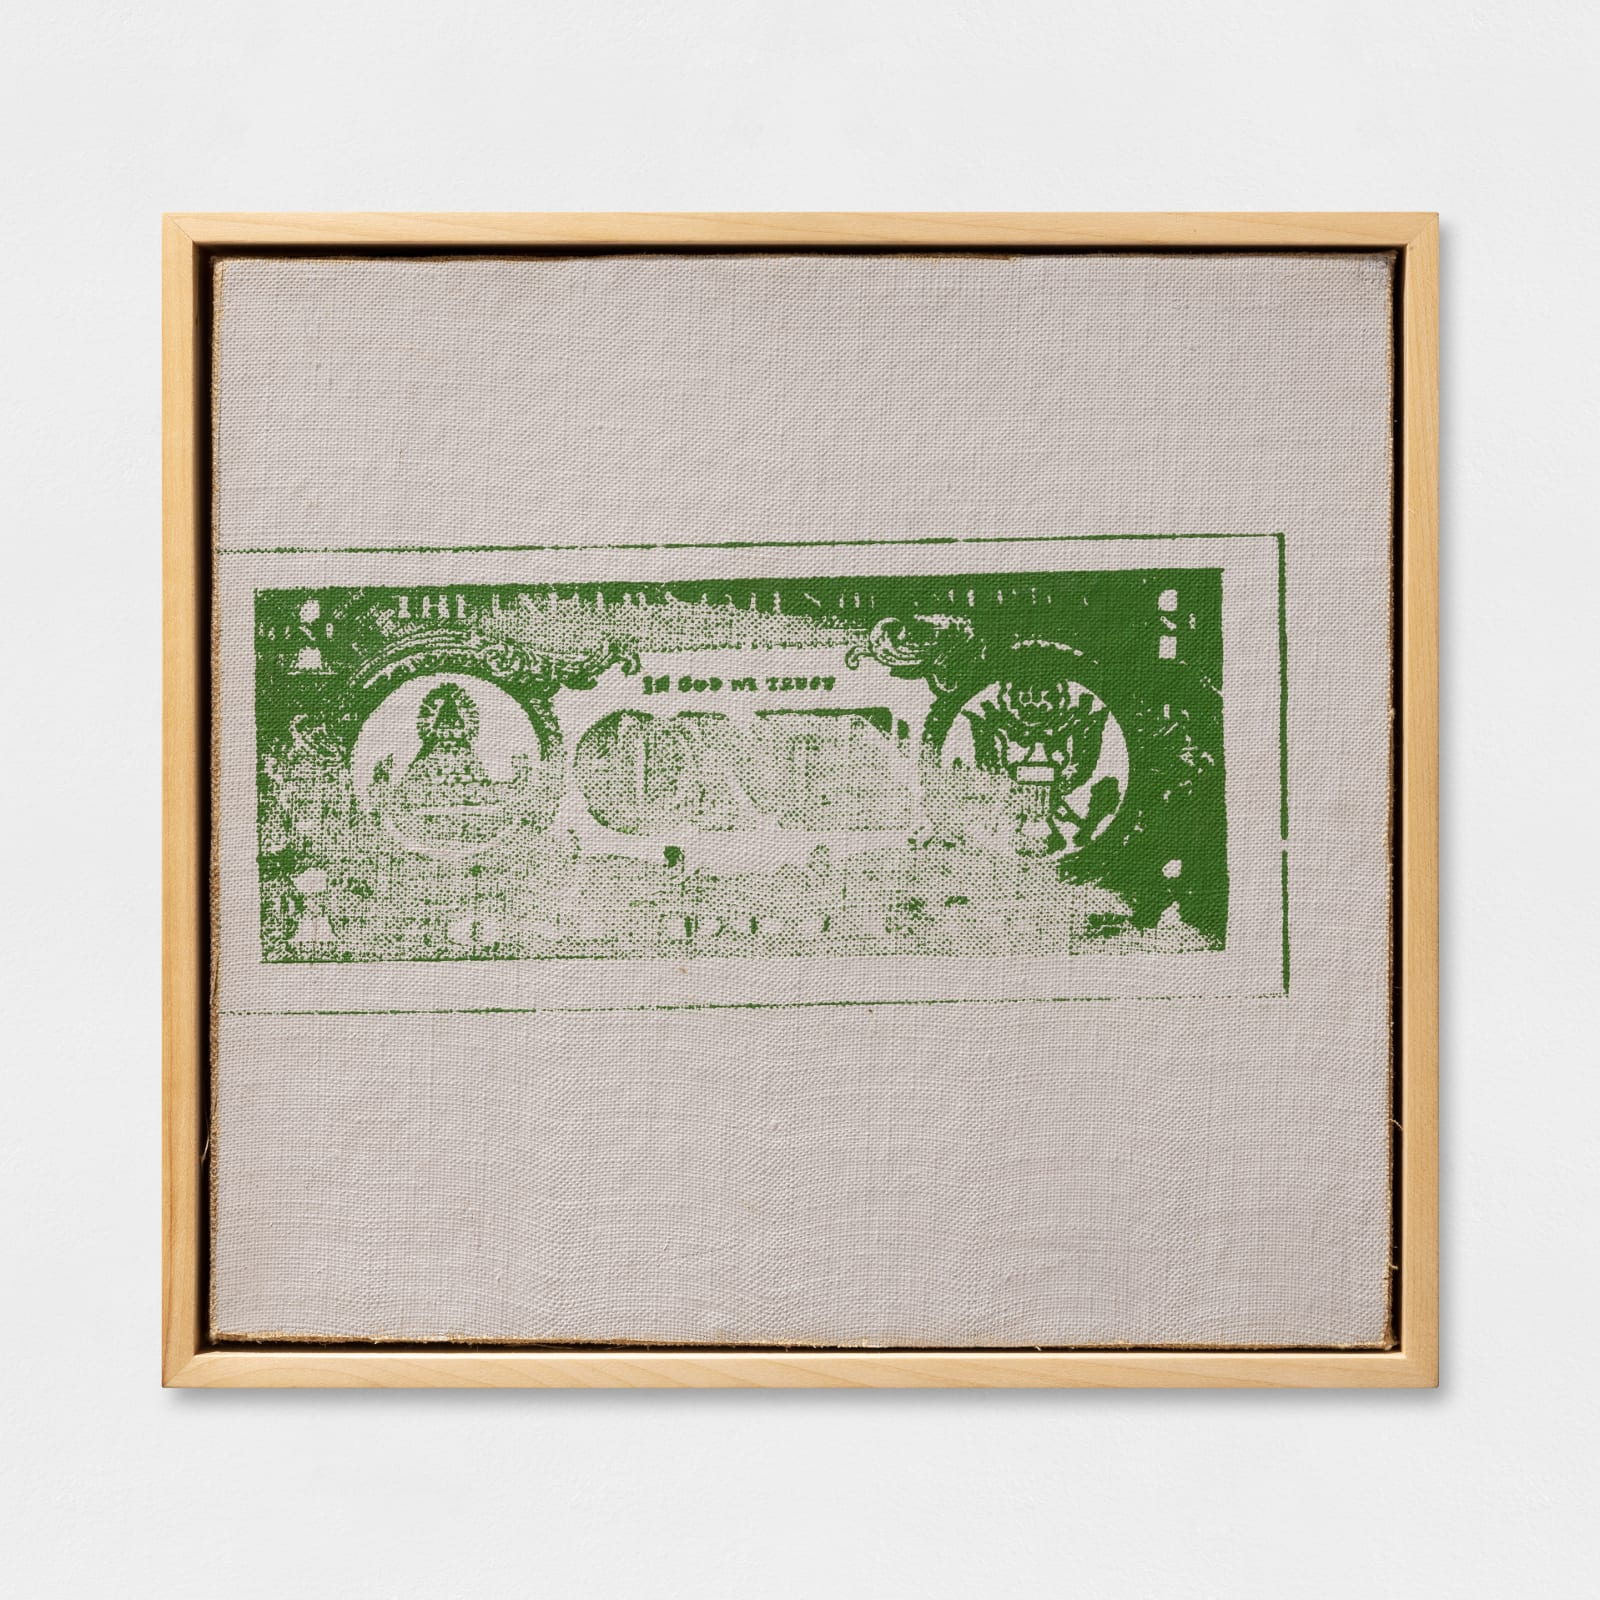 Andy Warhol, One Dollar Bill (Back), 1962